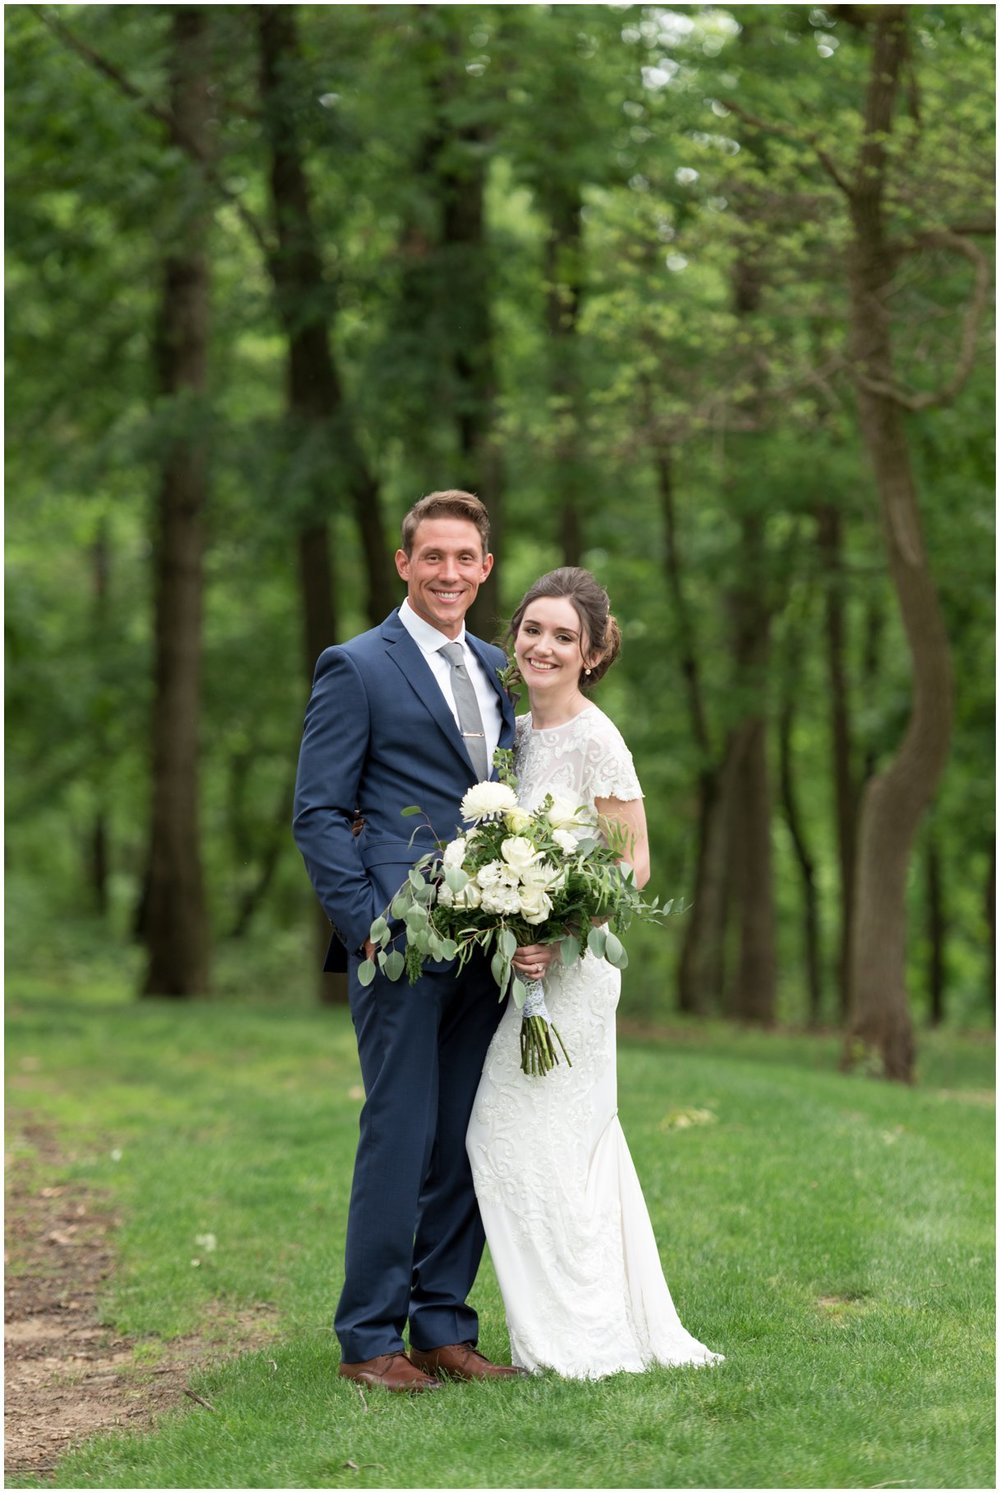 Lancaster private residence bride and groom portrait wedding photo